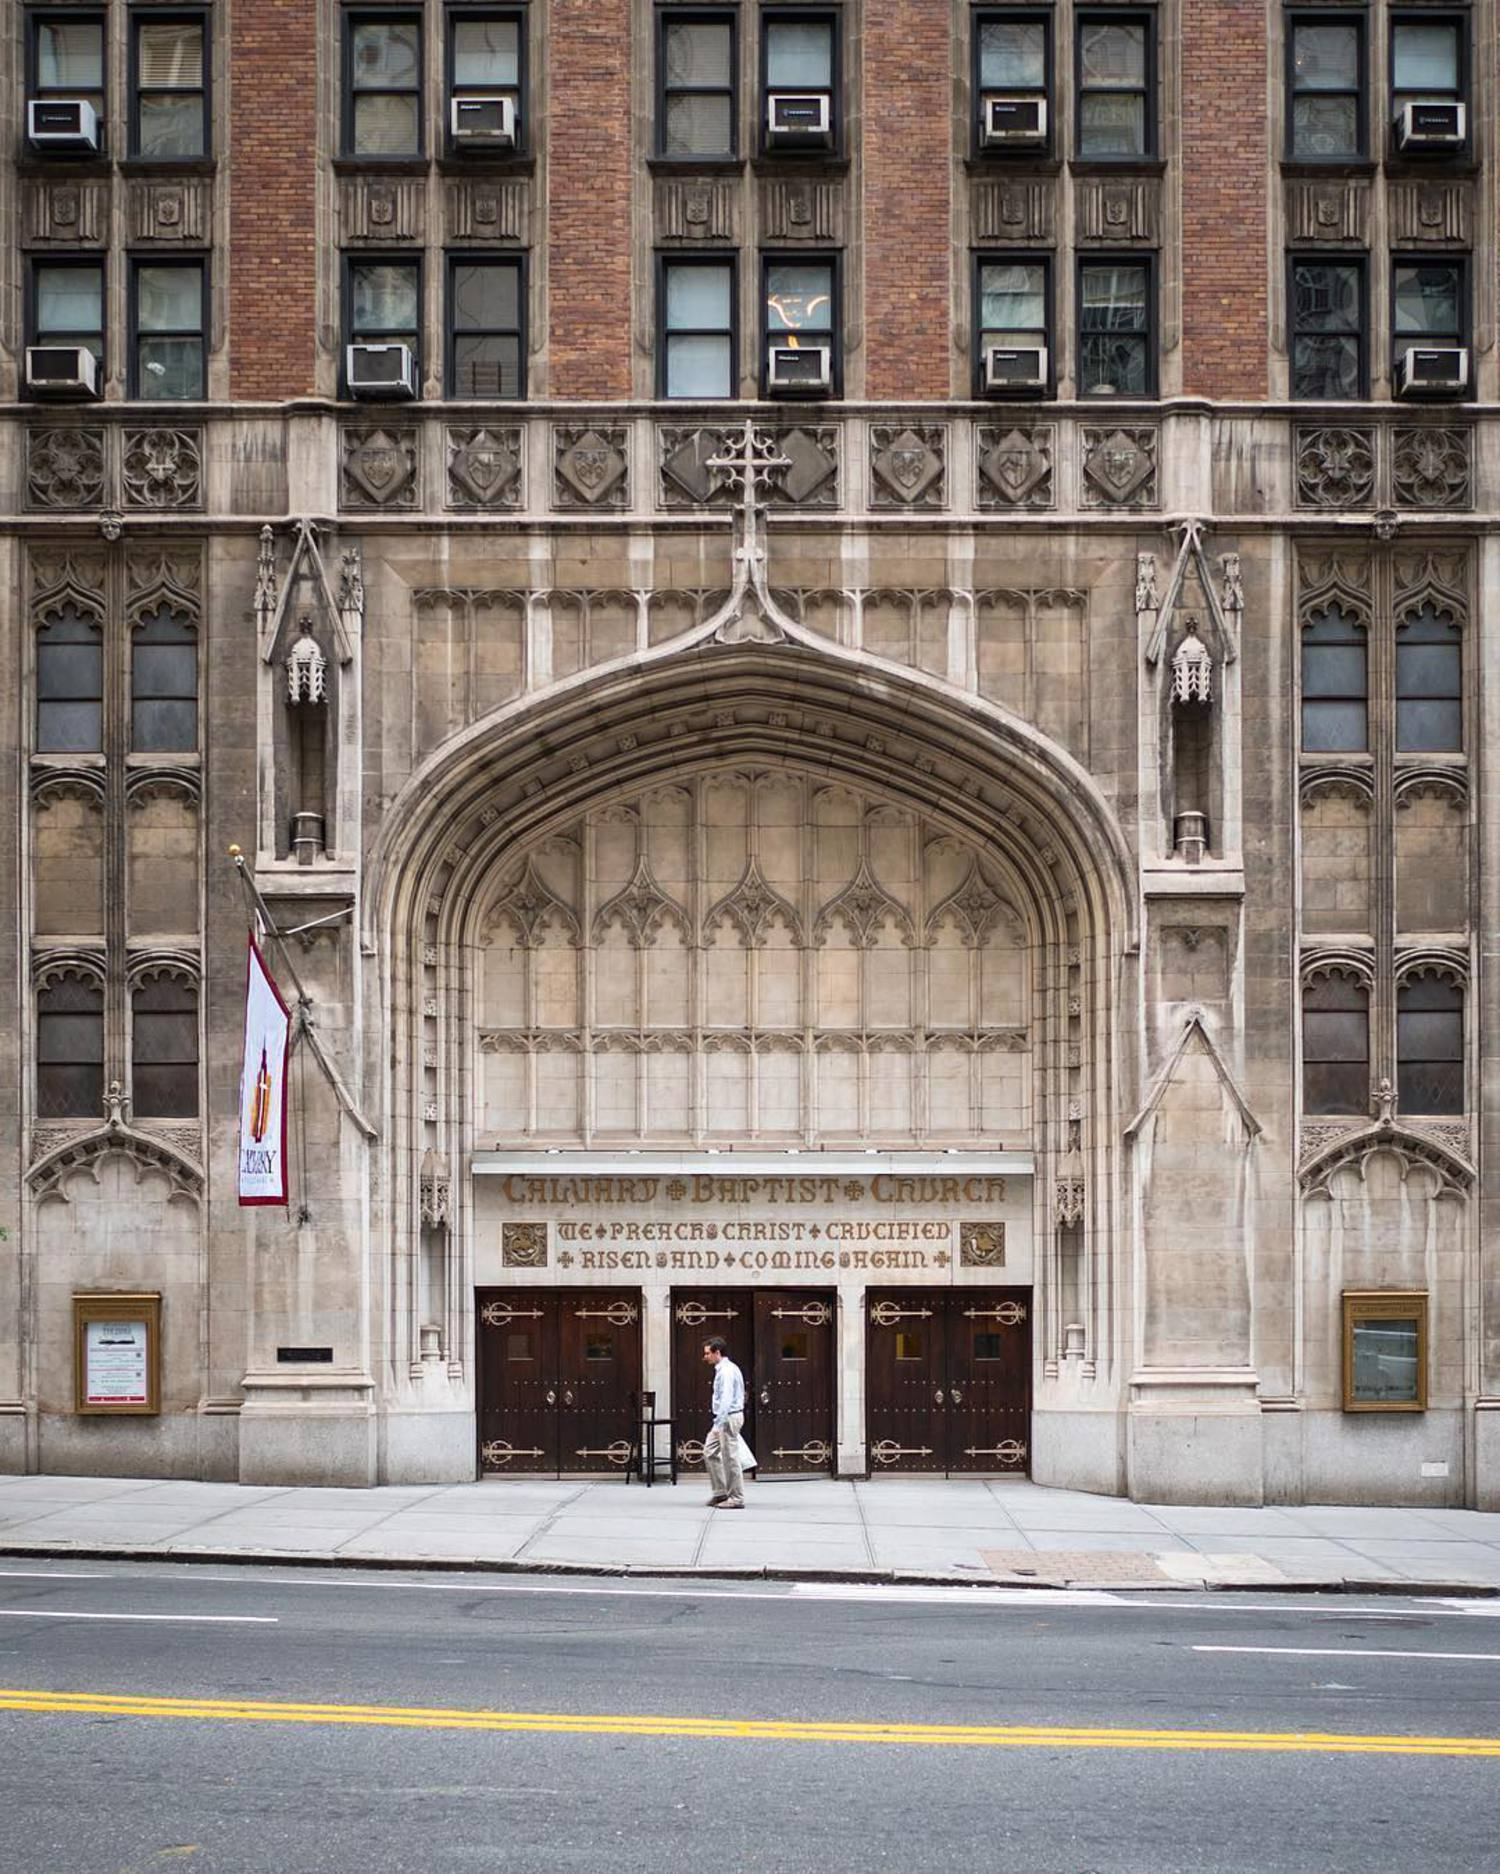 Church in Manhattan.  Photo by @steve.gomes  #NewYork #NewYorkCity #newyorker #NewYorkNewYork #NYC #nyclife #USA #America #UnitedStates #city #citylife #view #bigcity #vsco #vscocam #manhattan #Brooklyn #soho #eastvillage #timessquare #bigapple #photogrid #photo #vsconyc #instagramers #instagrammers #instamood #street #view #architecture #church